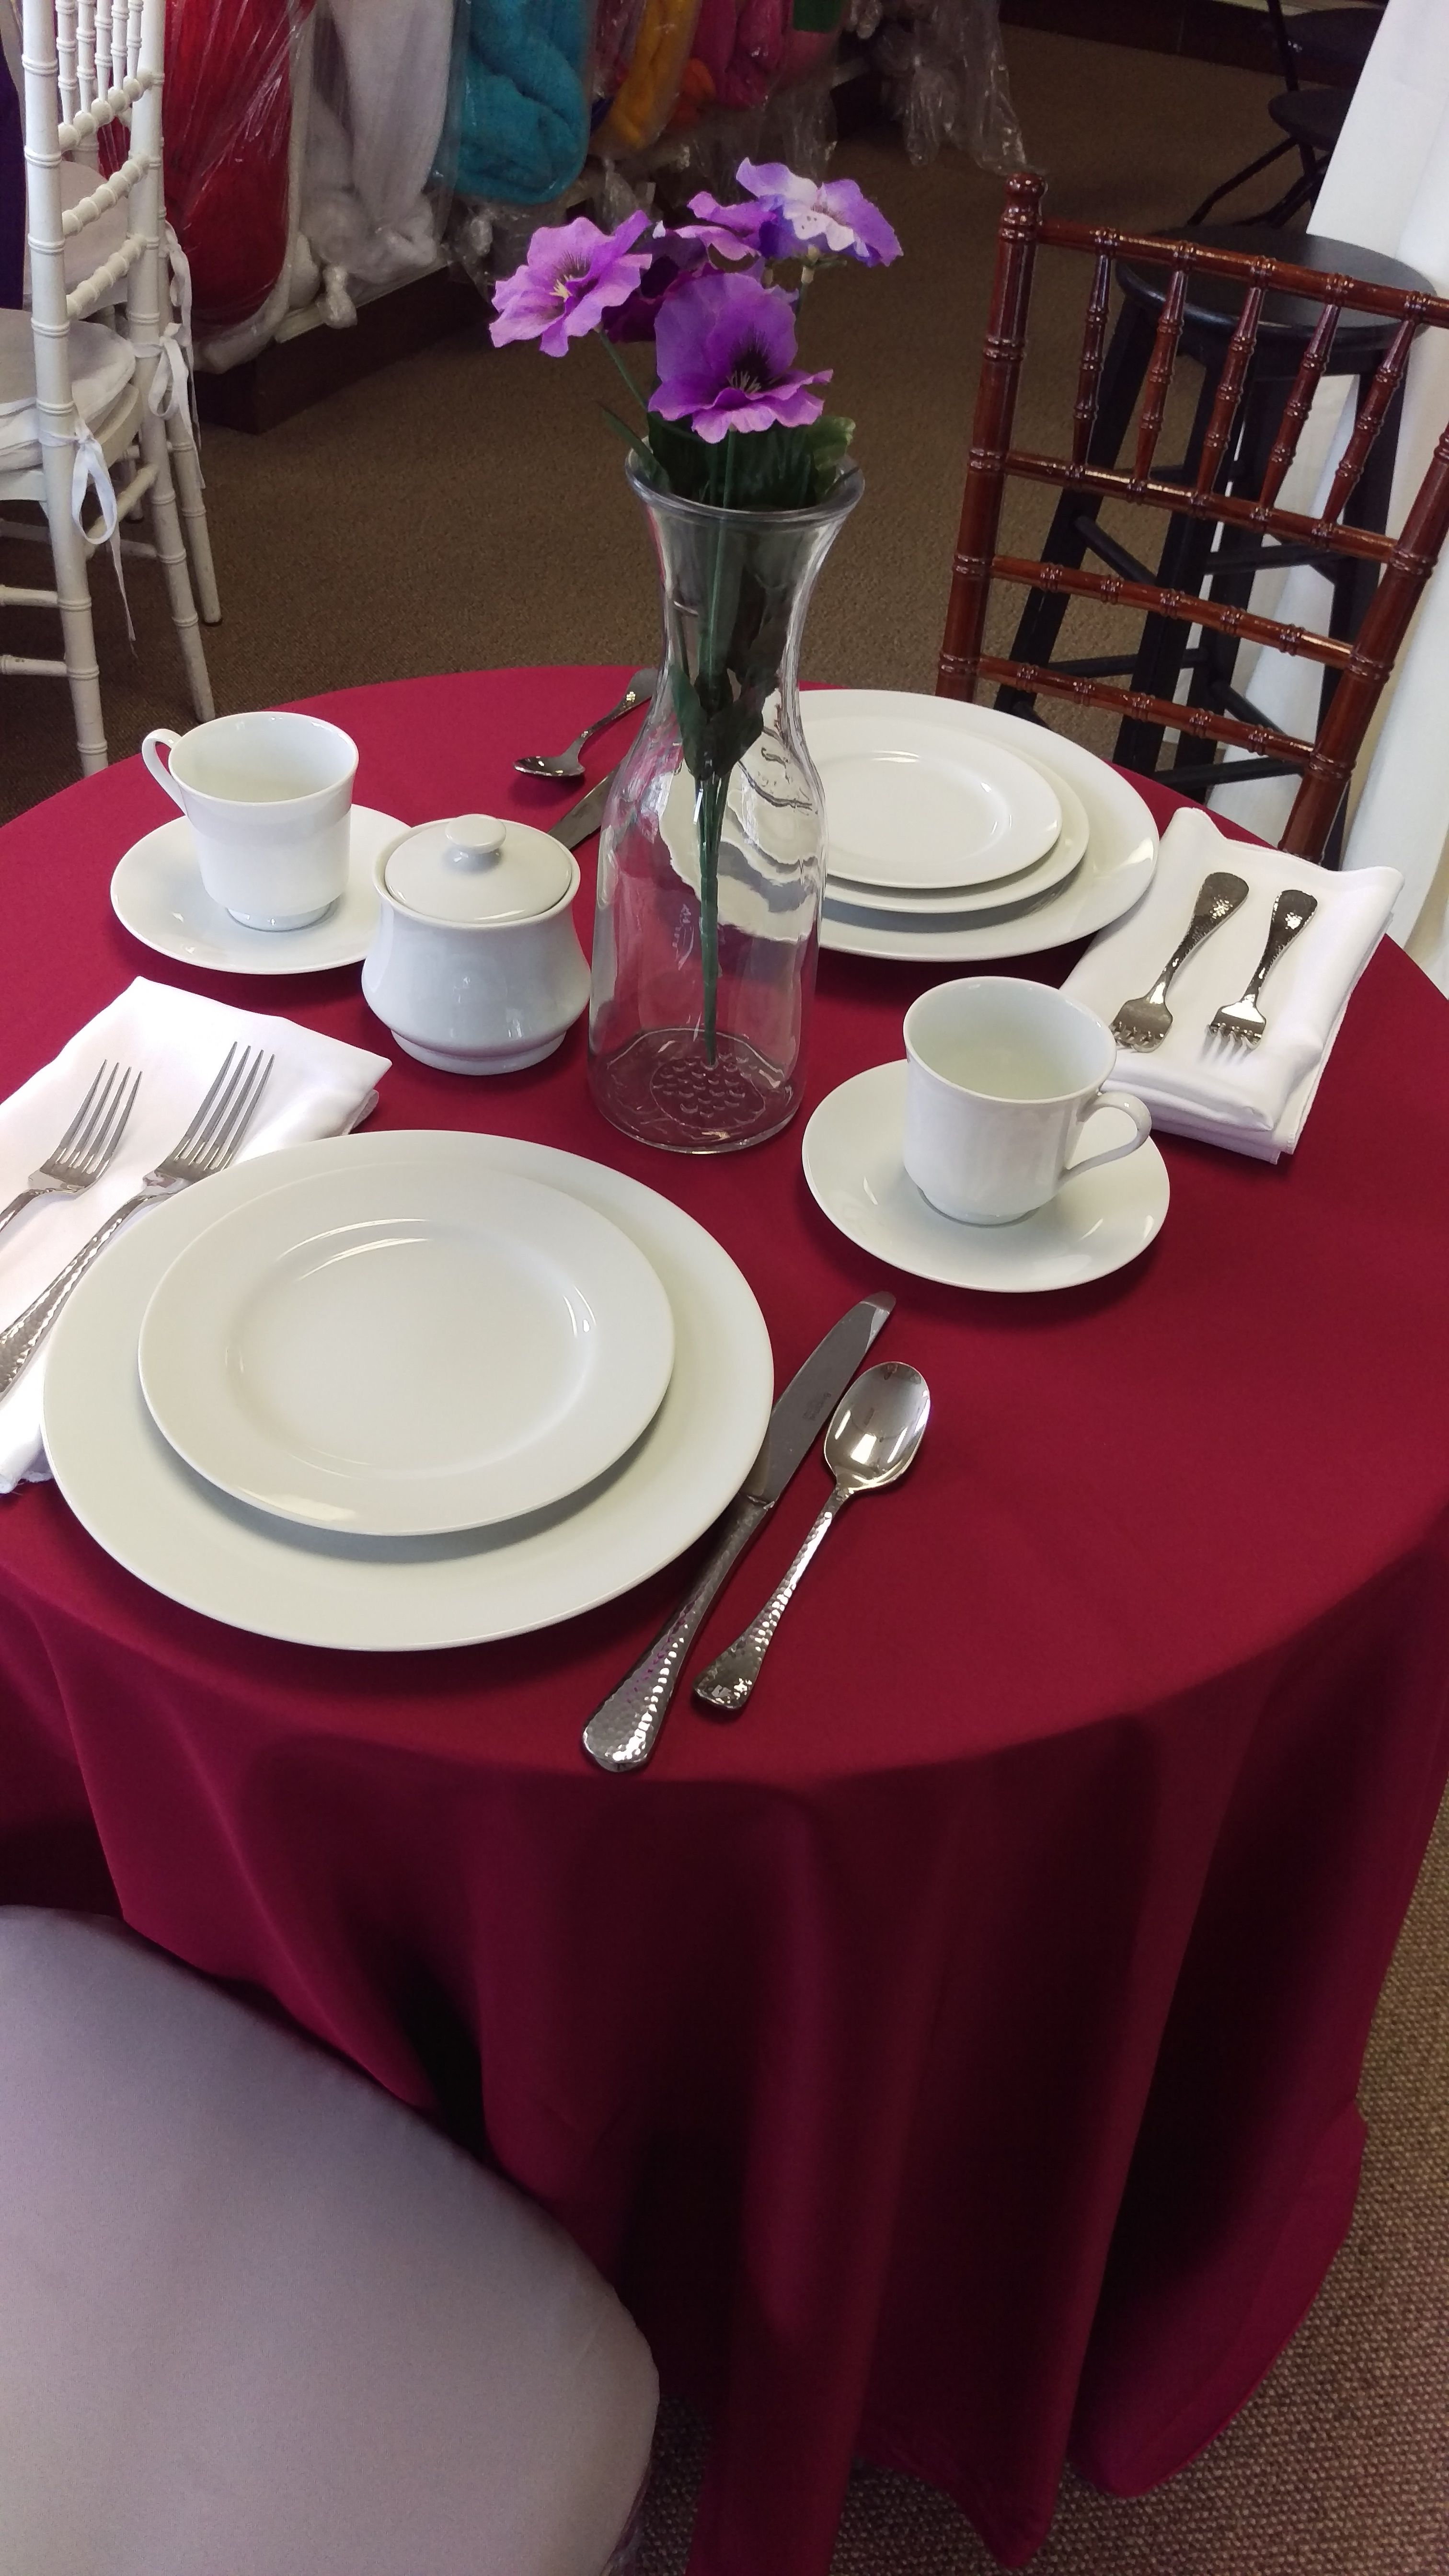 Our 30 Round Table Is Perfect For A Romantic Evening For Two Especially For Valentinesday Taylorrentalnj Table Settings Table Franklin Lakes 30 inch round table